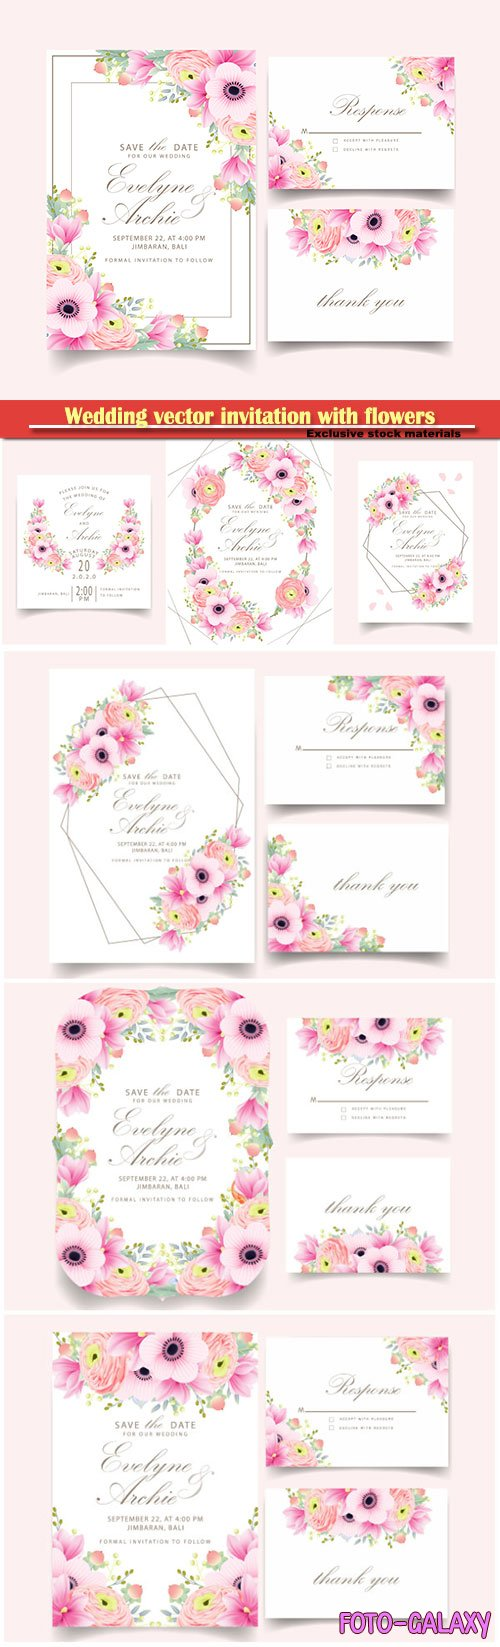 Wedding vector invitation with beautiful flowers